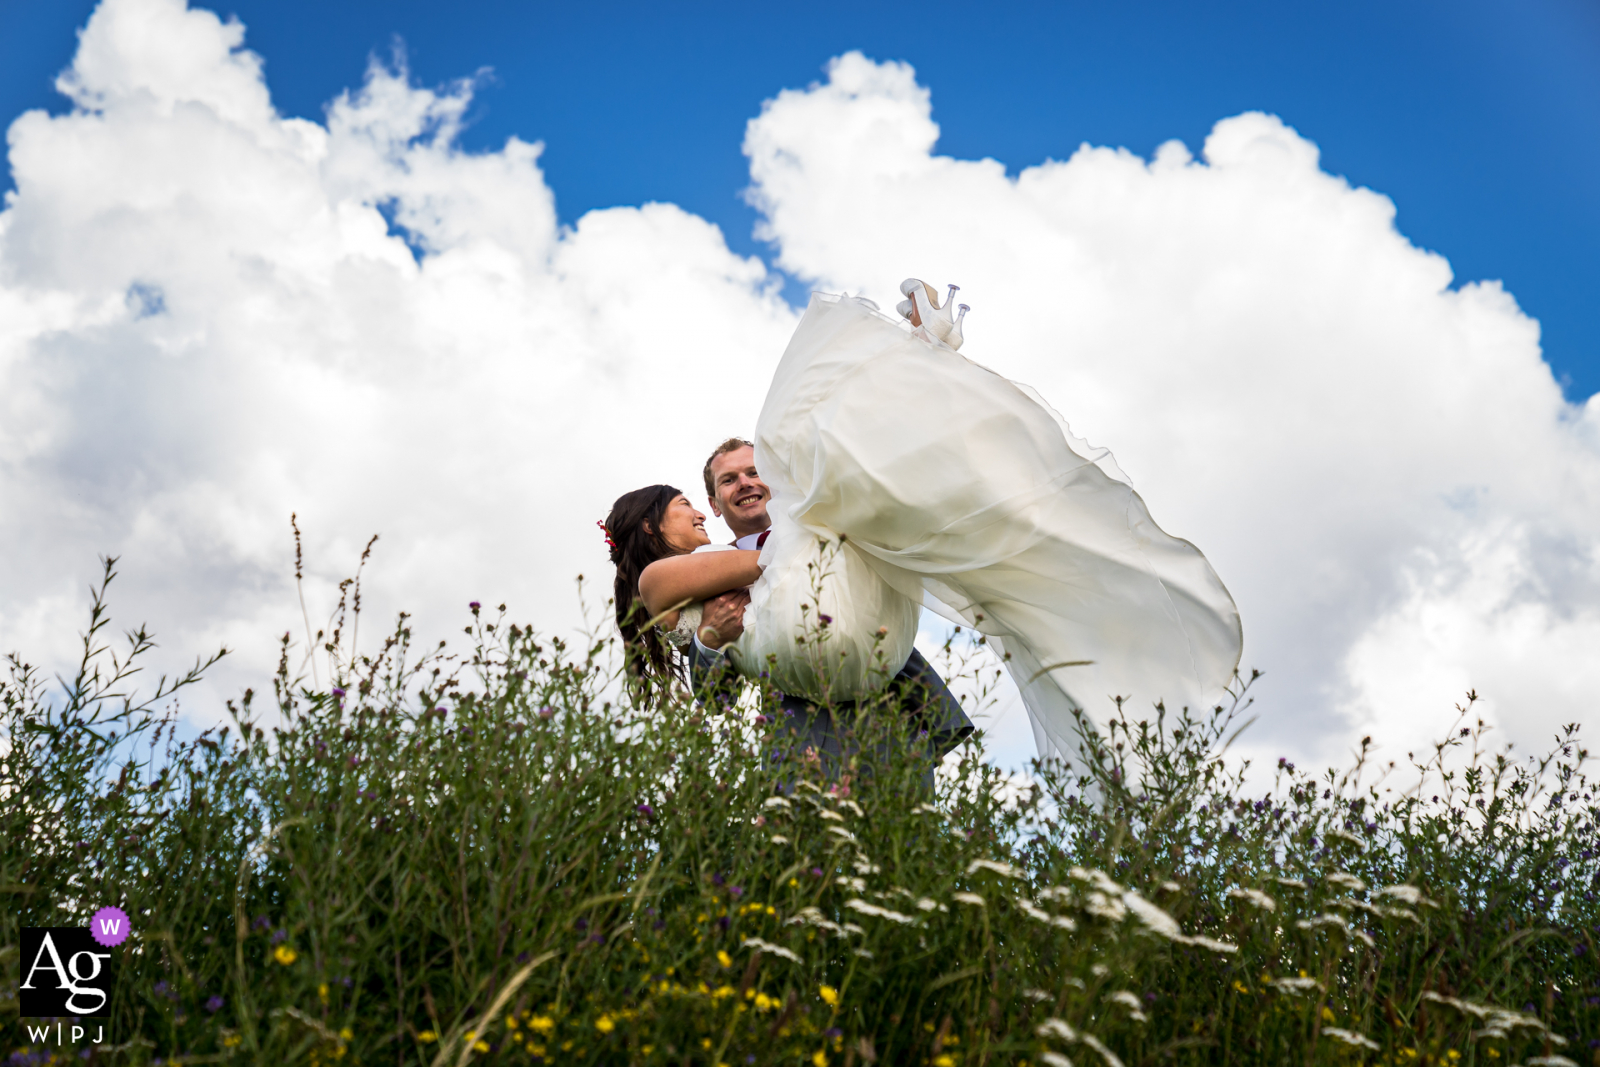 Benedensas in the Heen creative couple wedding portrait while having fun, groom is lifting the bride